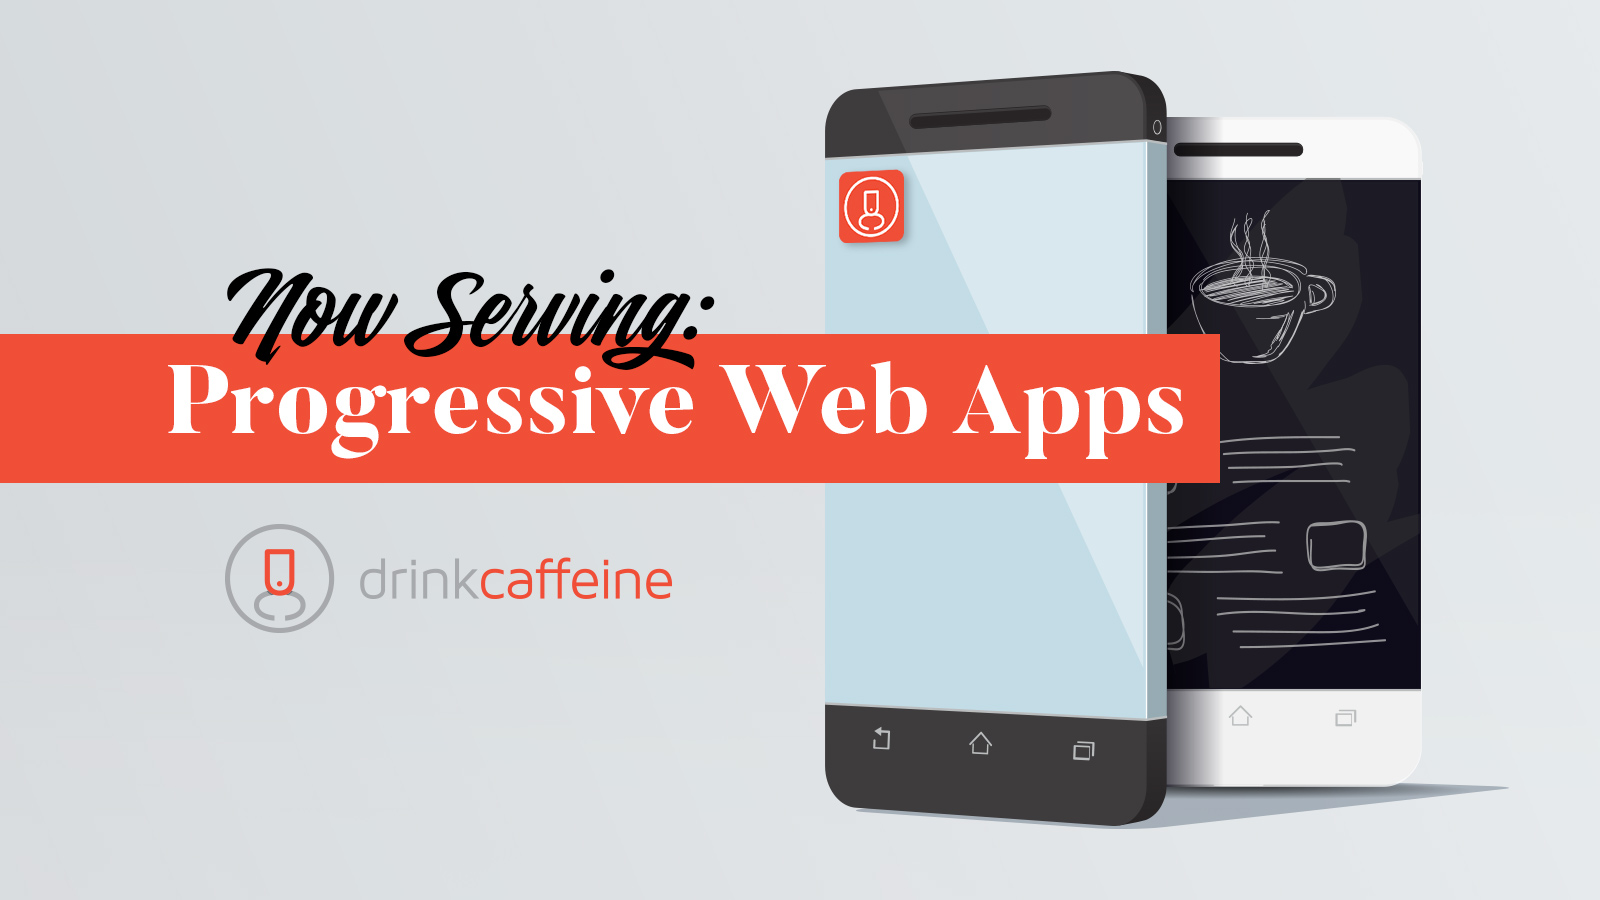 Progressive web apps now being served blog image